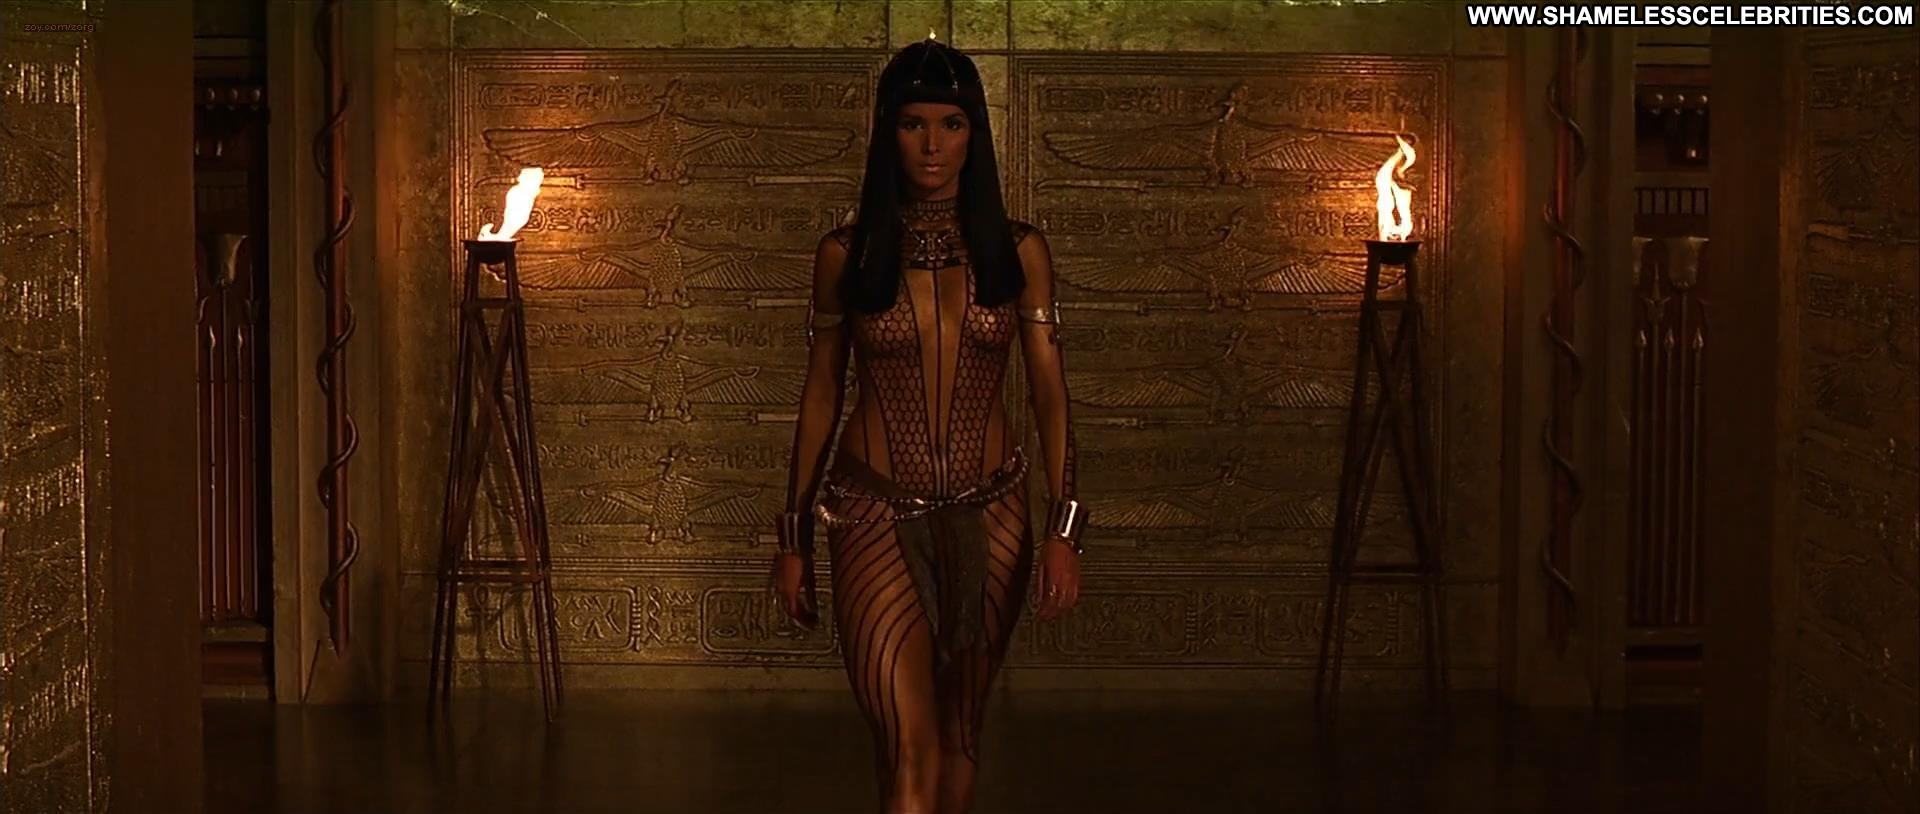 velasquez the mummy celebrity nice nude wet hot posing hot movie 3